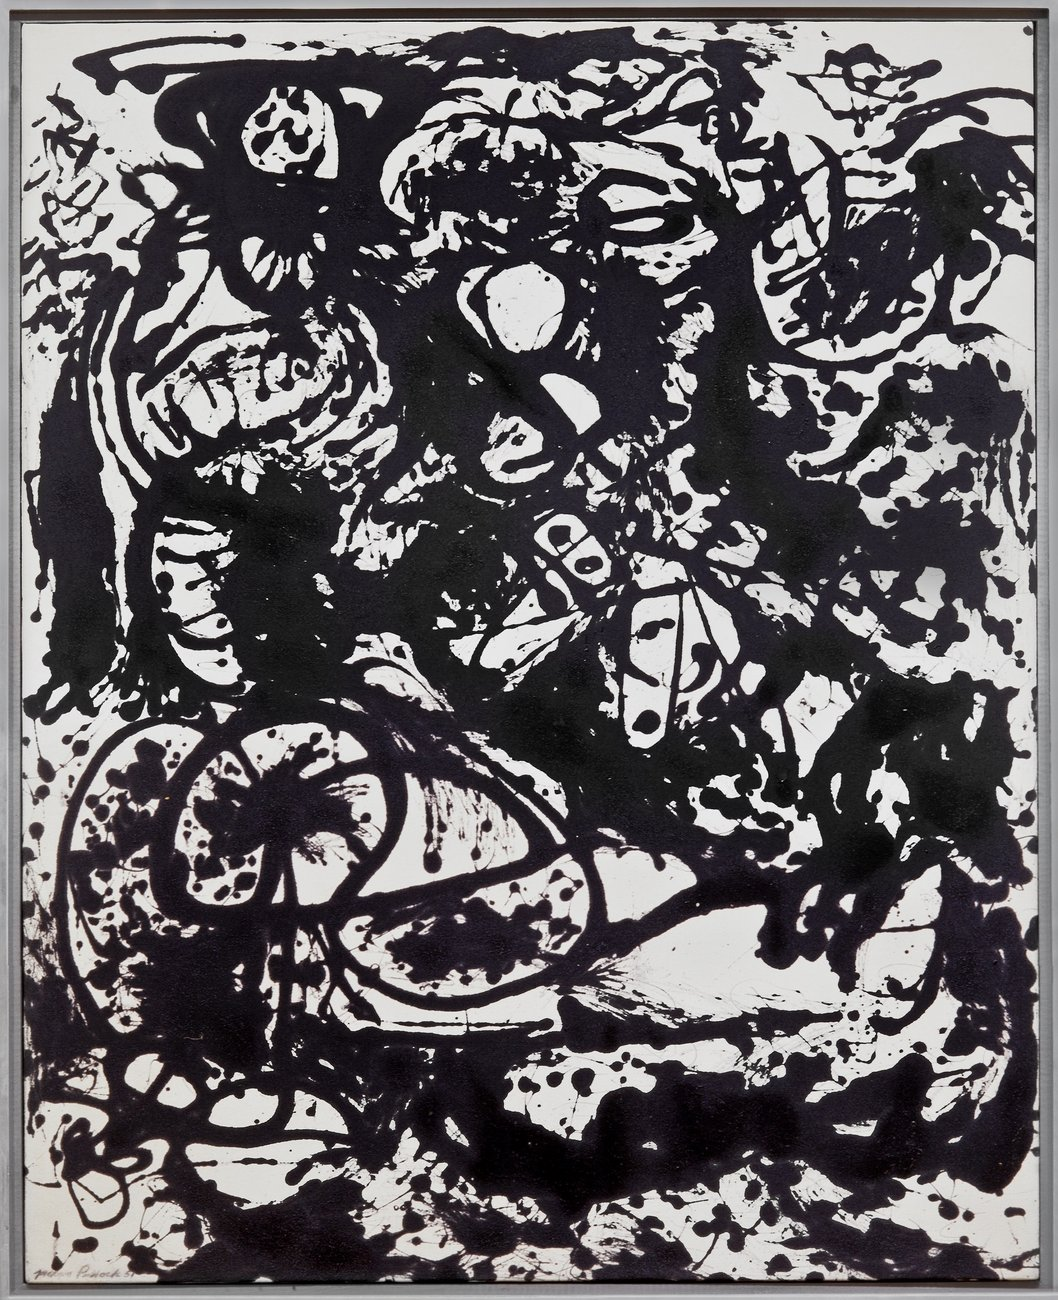 Artwork image, Jackson Pollock's Black and White (Number 6)